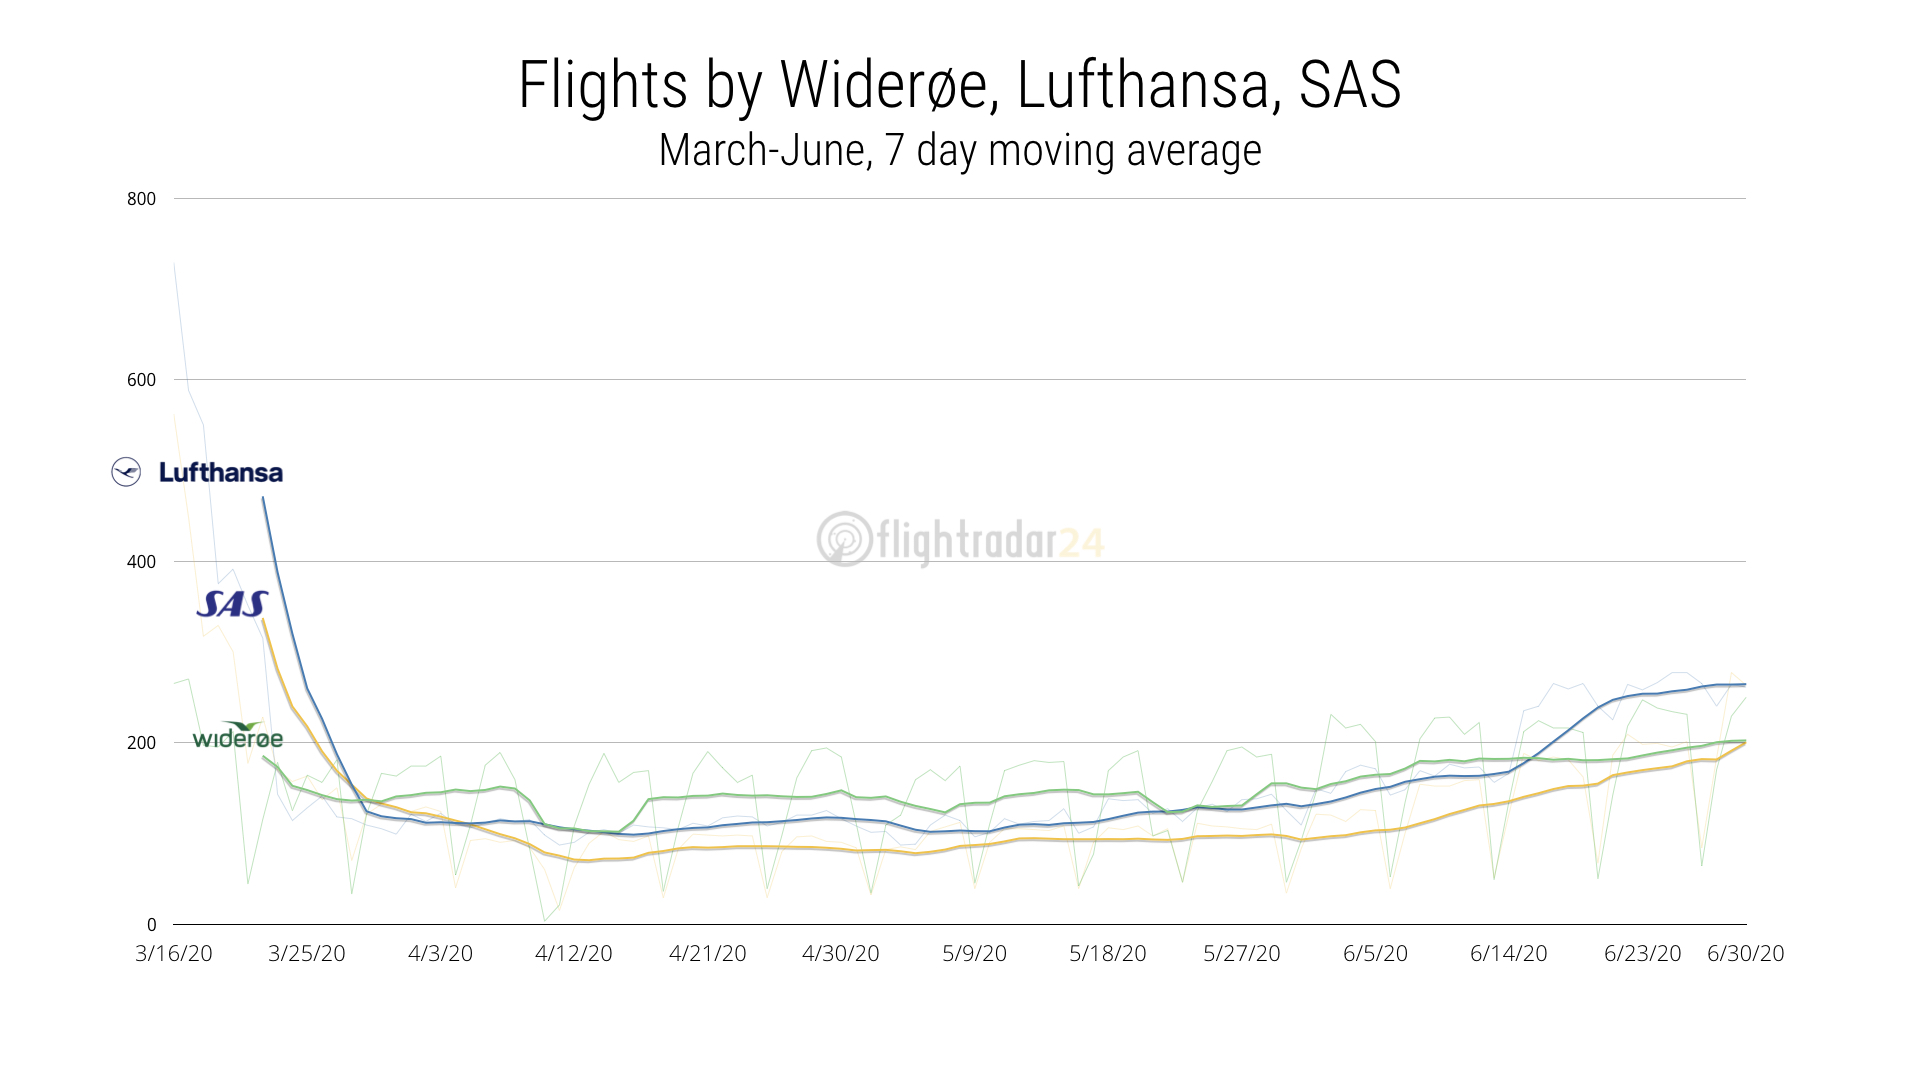 Flights by Wideroe, Lufthansa, and SAS from 16 March to 30 June